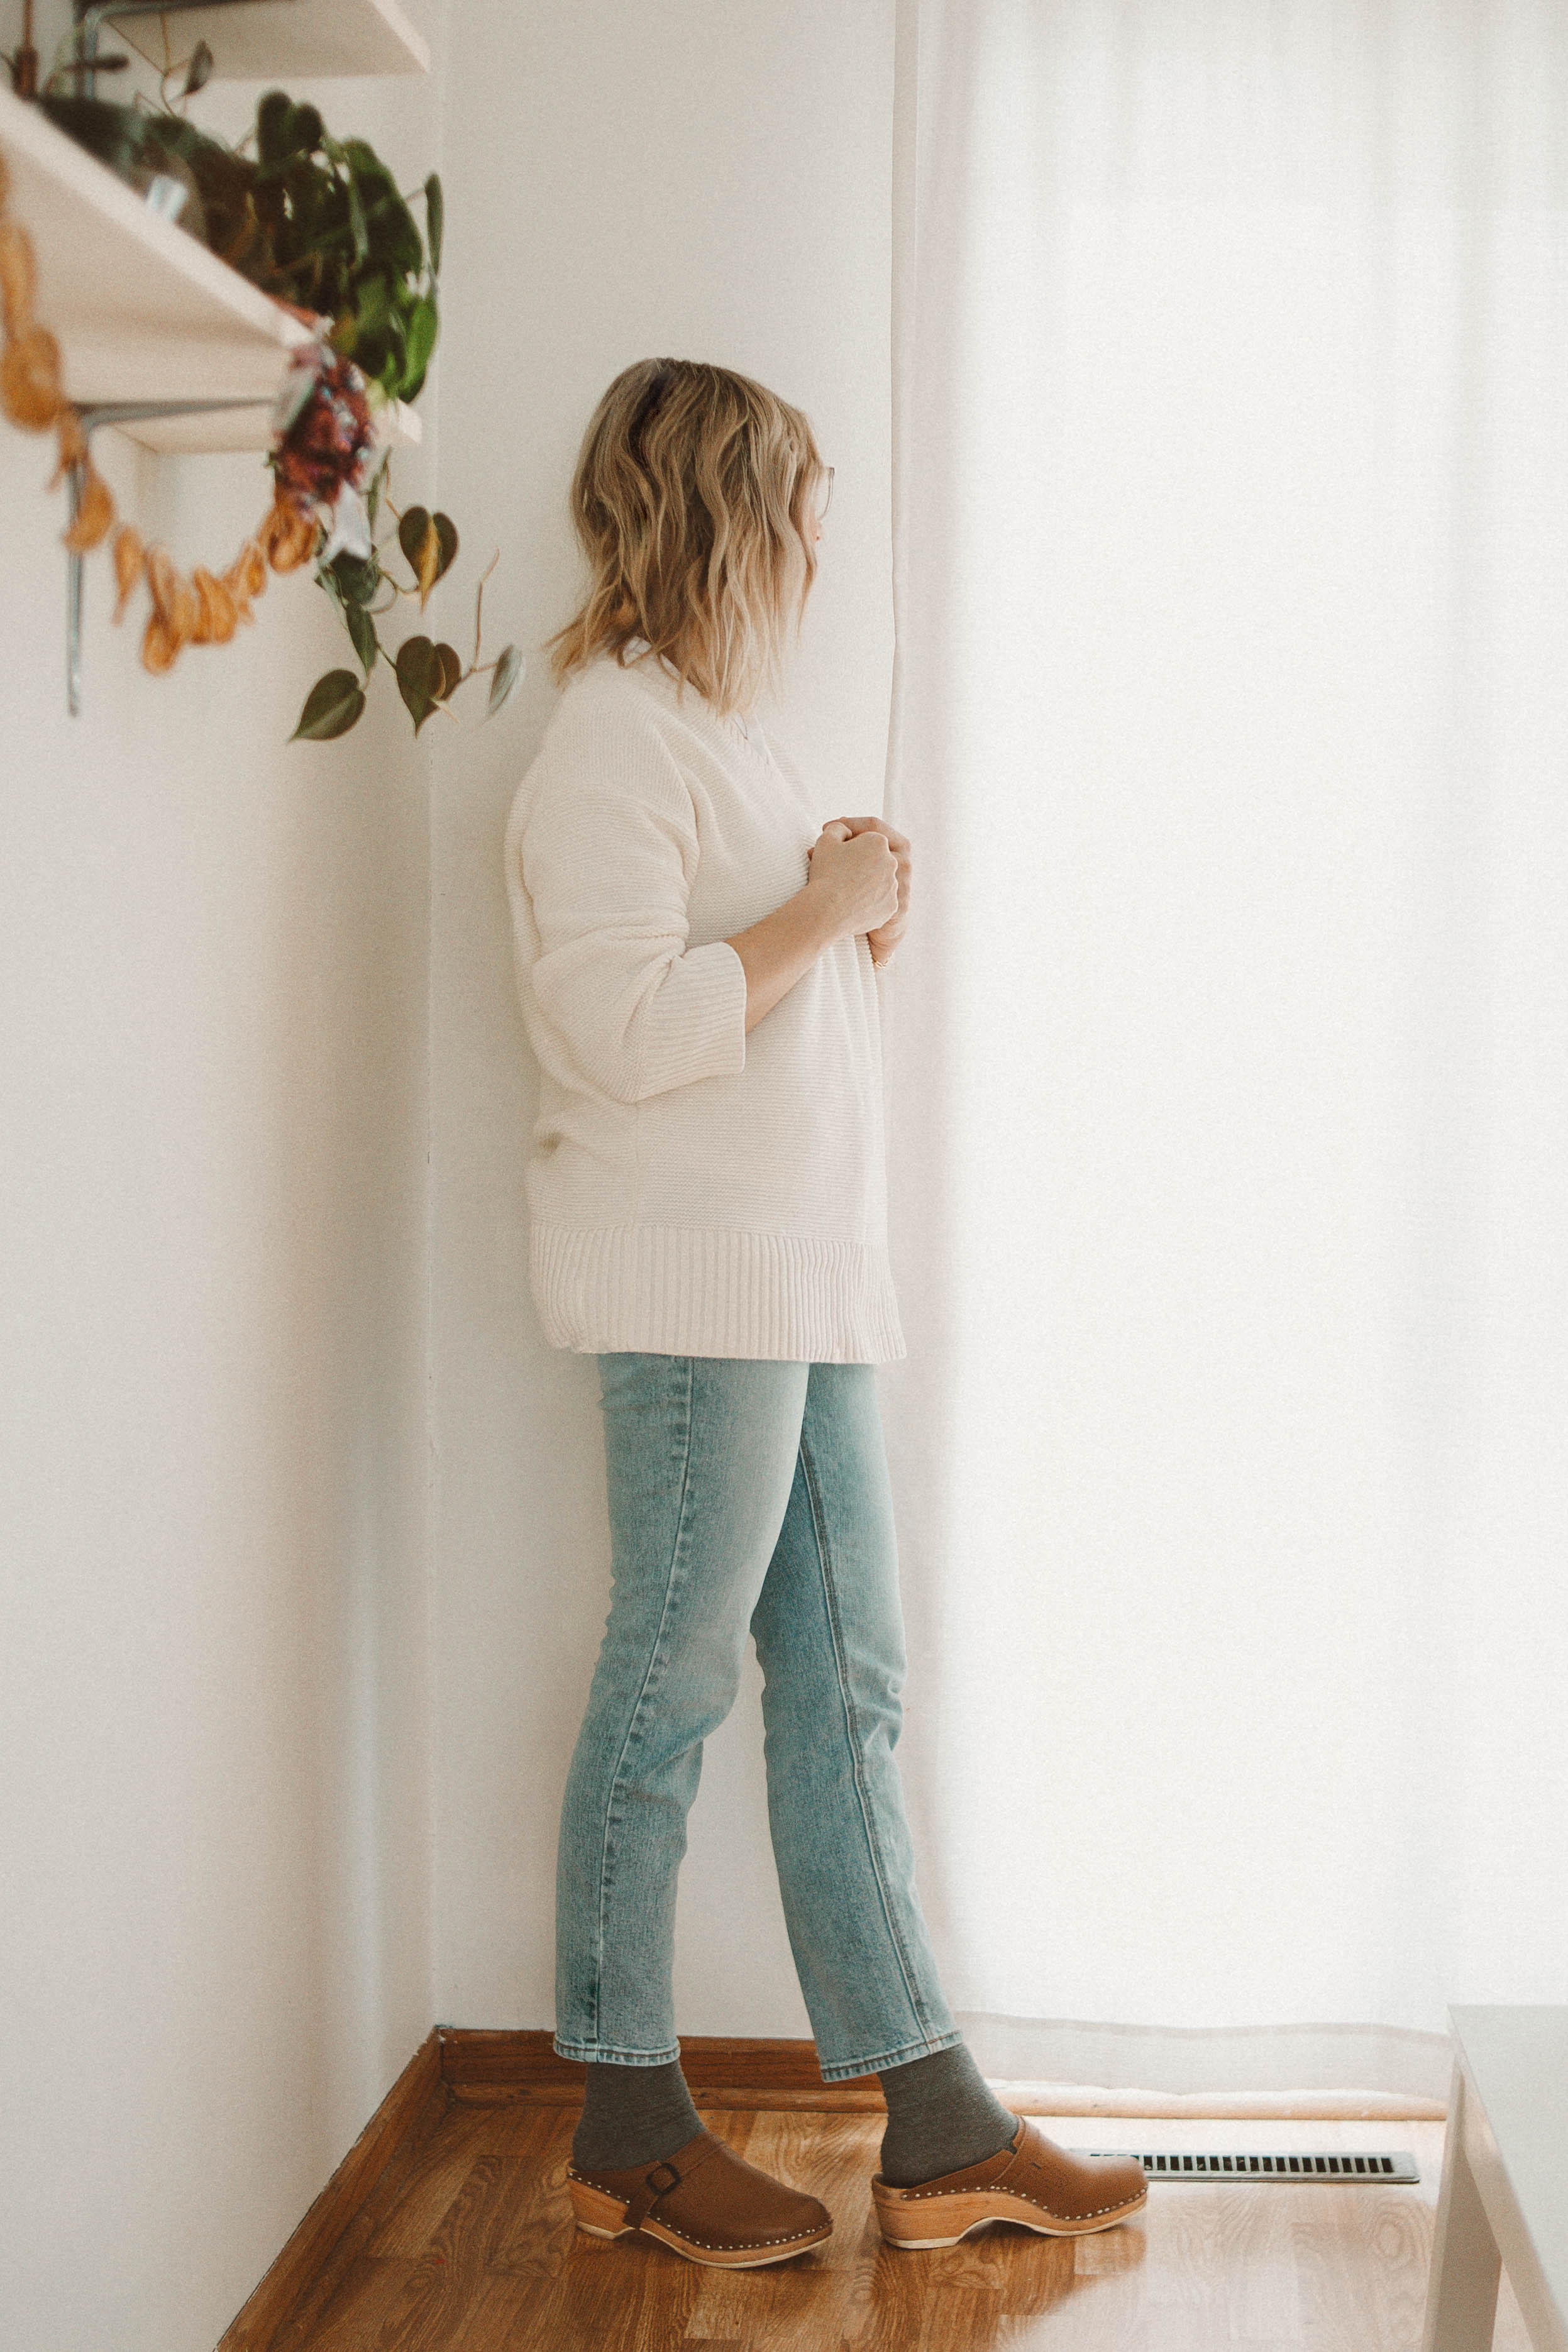 Real Winter Outfits Day 4: Changing things Up, Everlane Link Stitch Sweater, Vintage Denim, Old Navy Denim, Troentorp Clogs